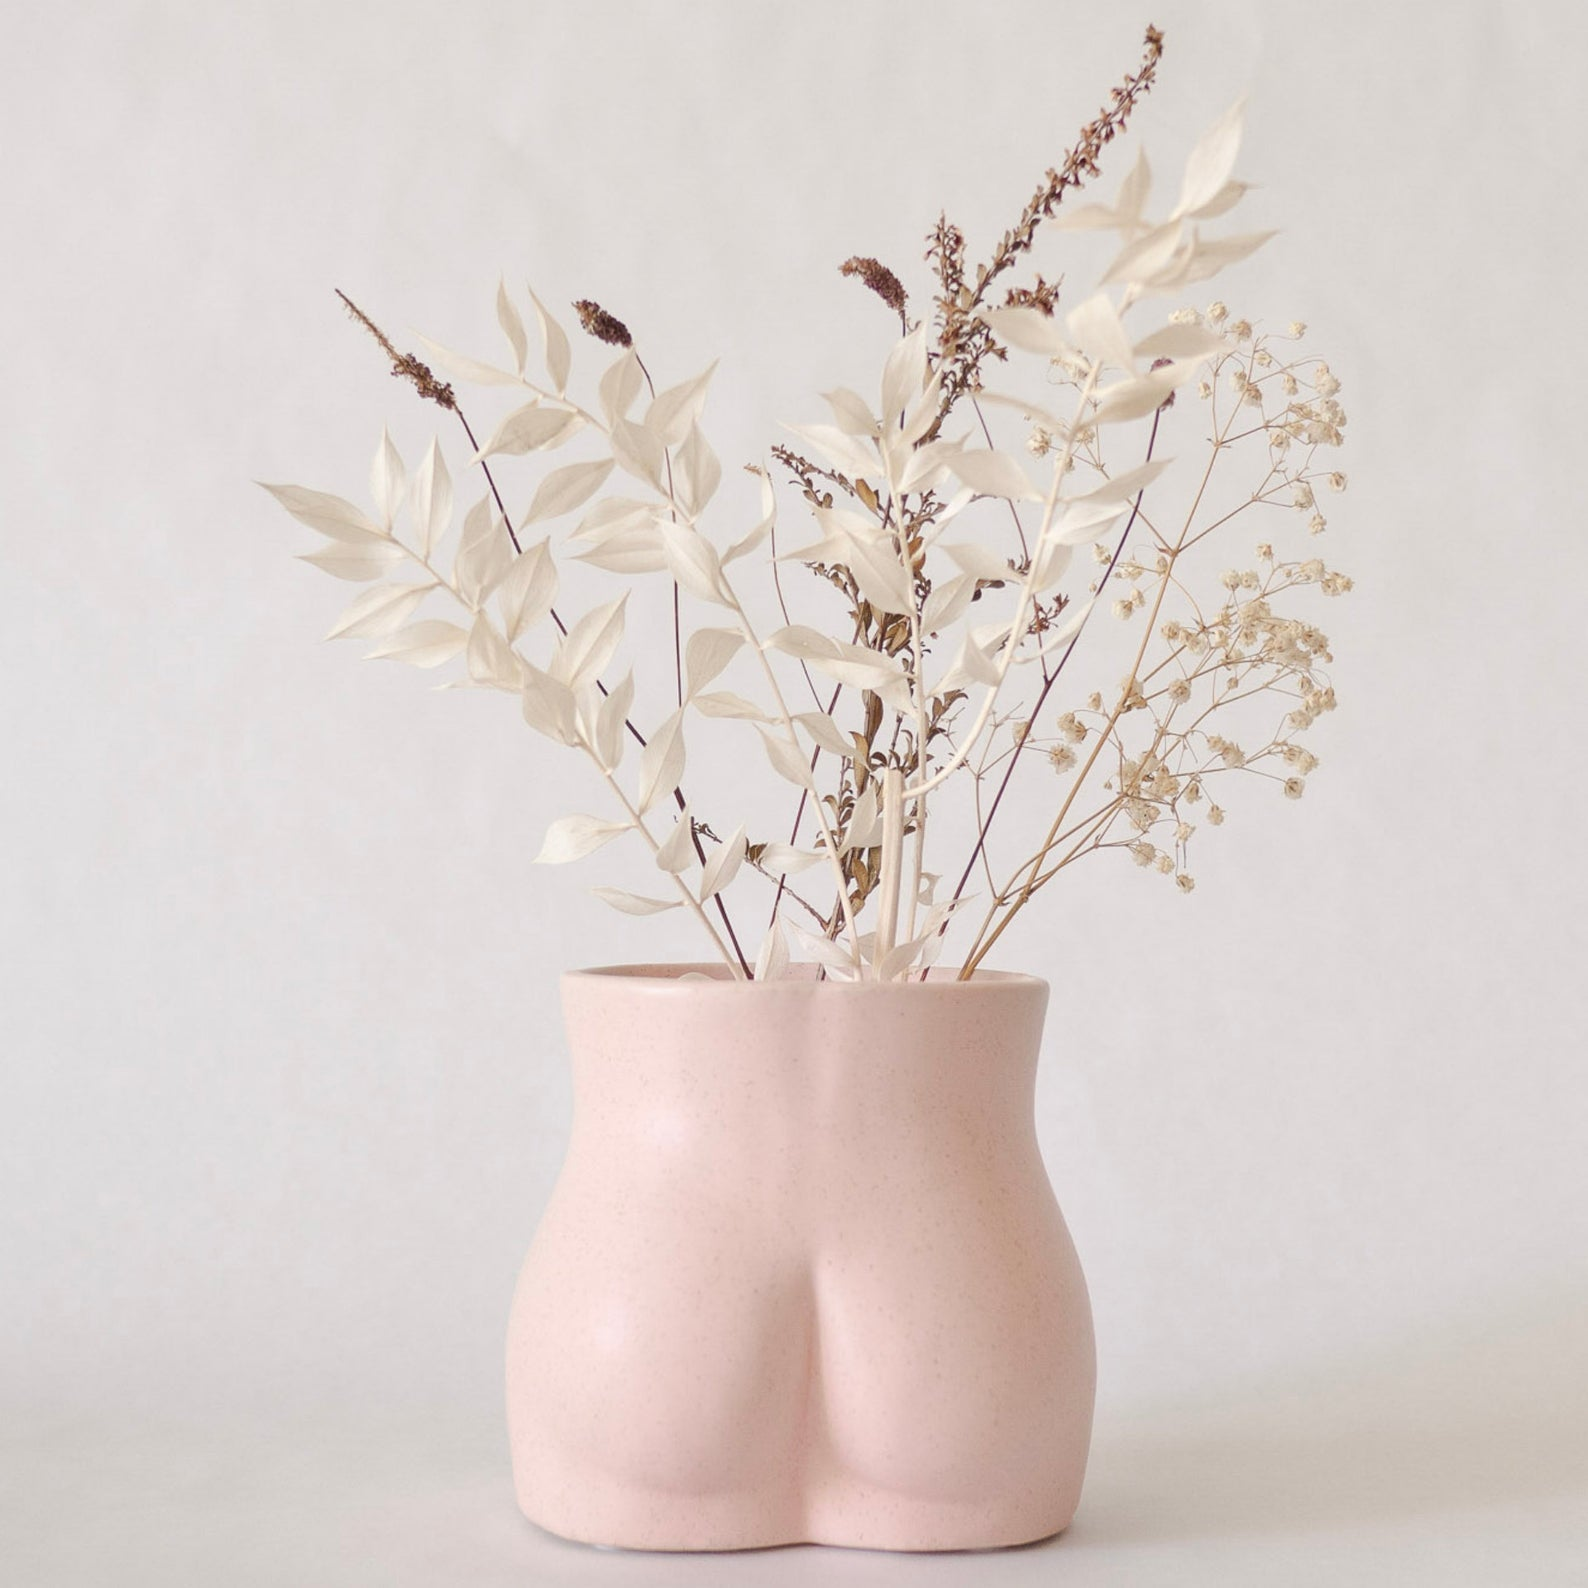 Pink ceramic vase shaped like a butt with flowers in it